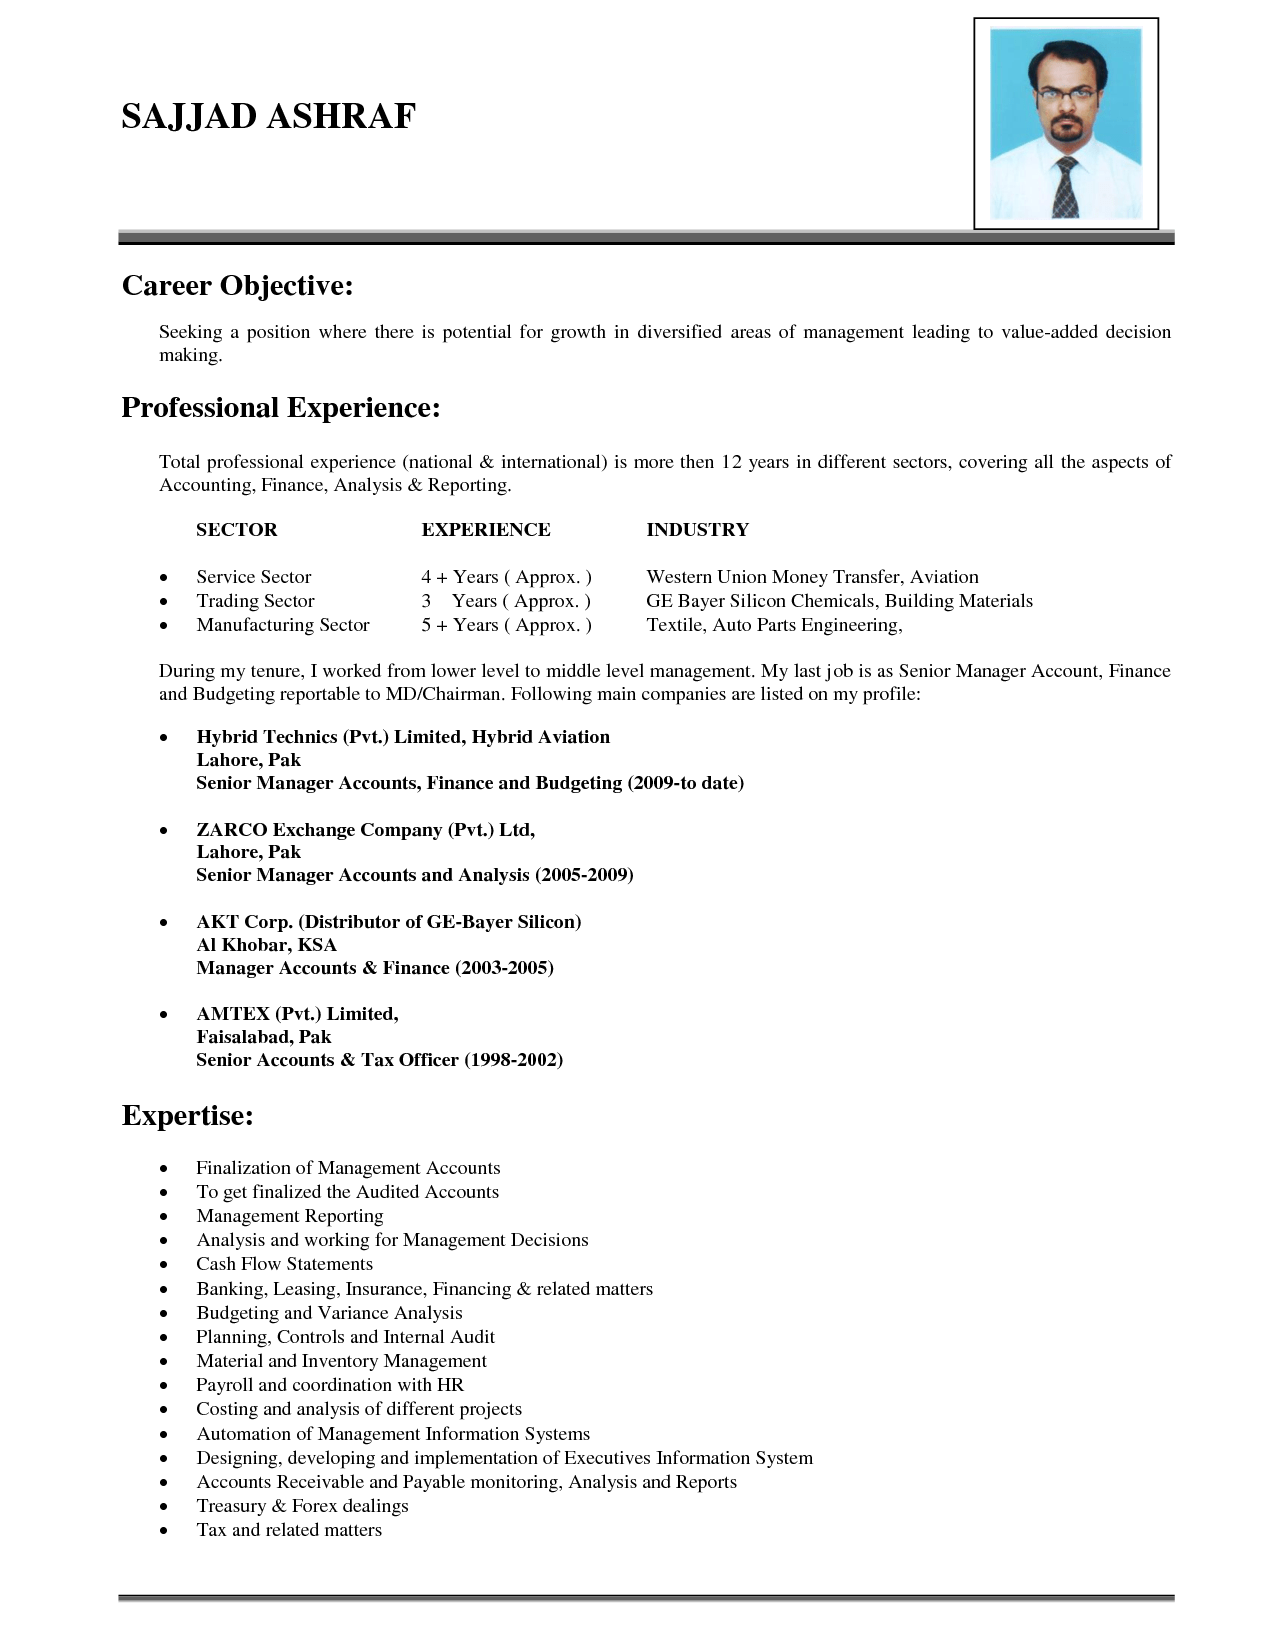 Objective Career For Resume. Professional Objective For Resume ...